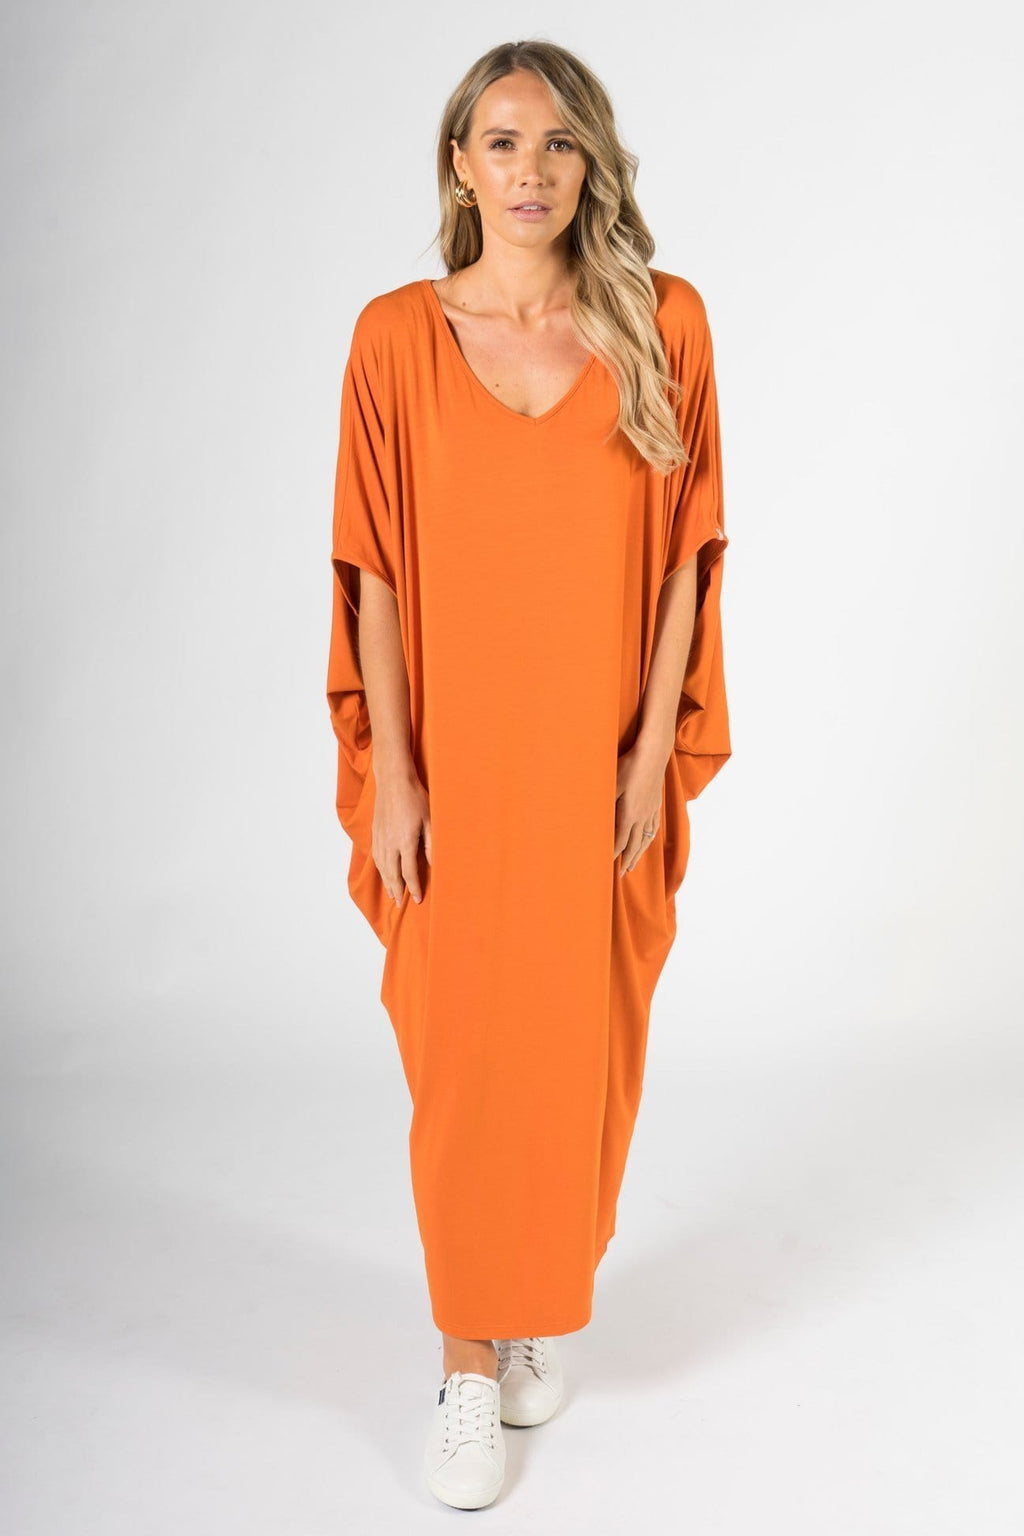 PQ Collection Maxi Miracle Dress - Sunset